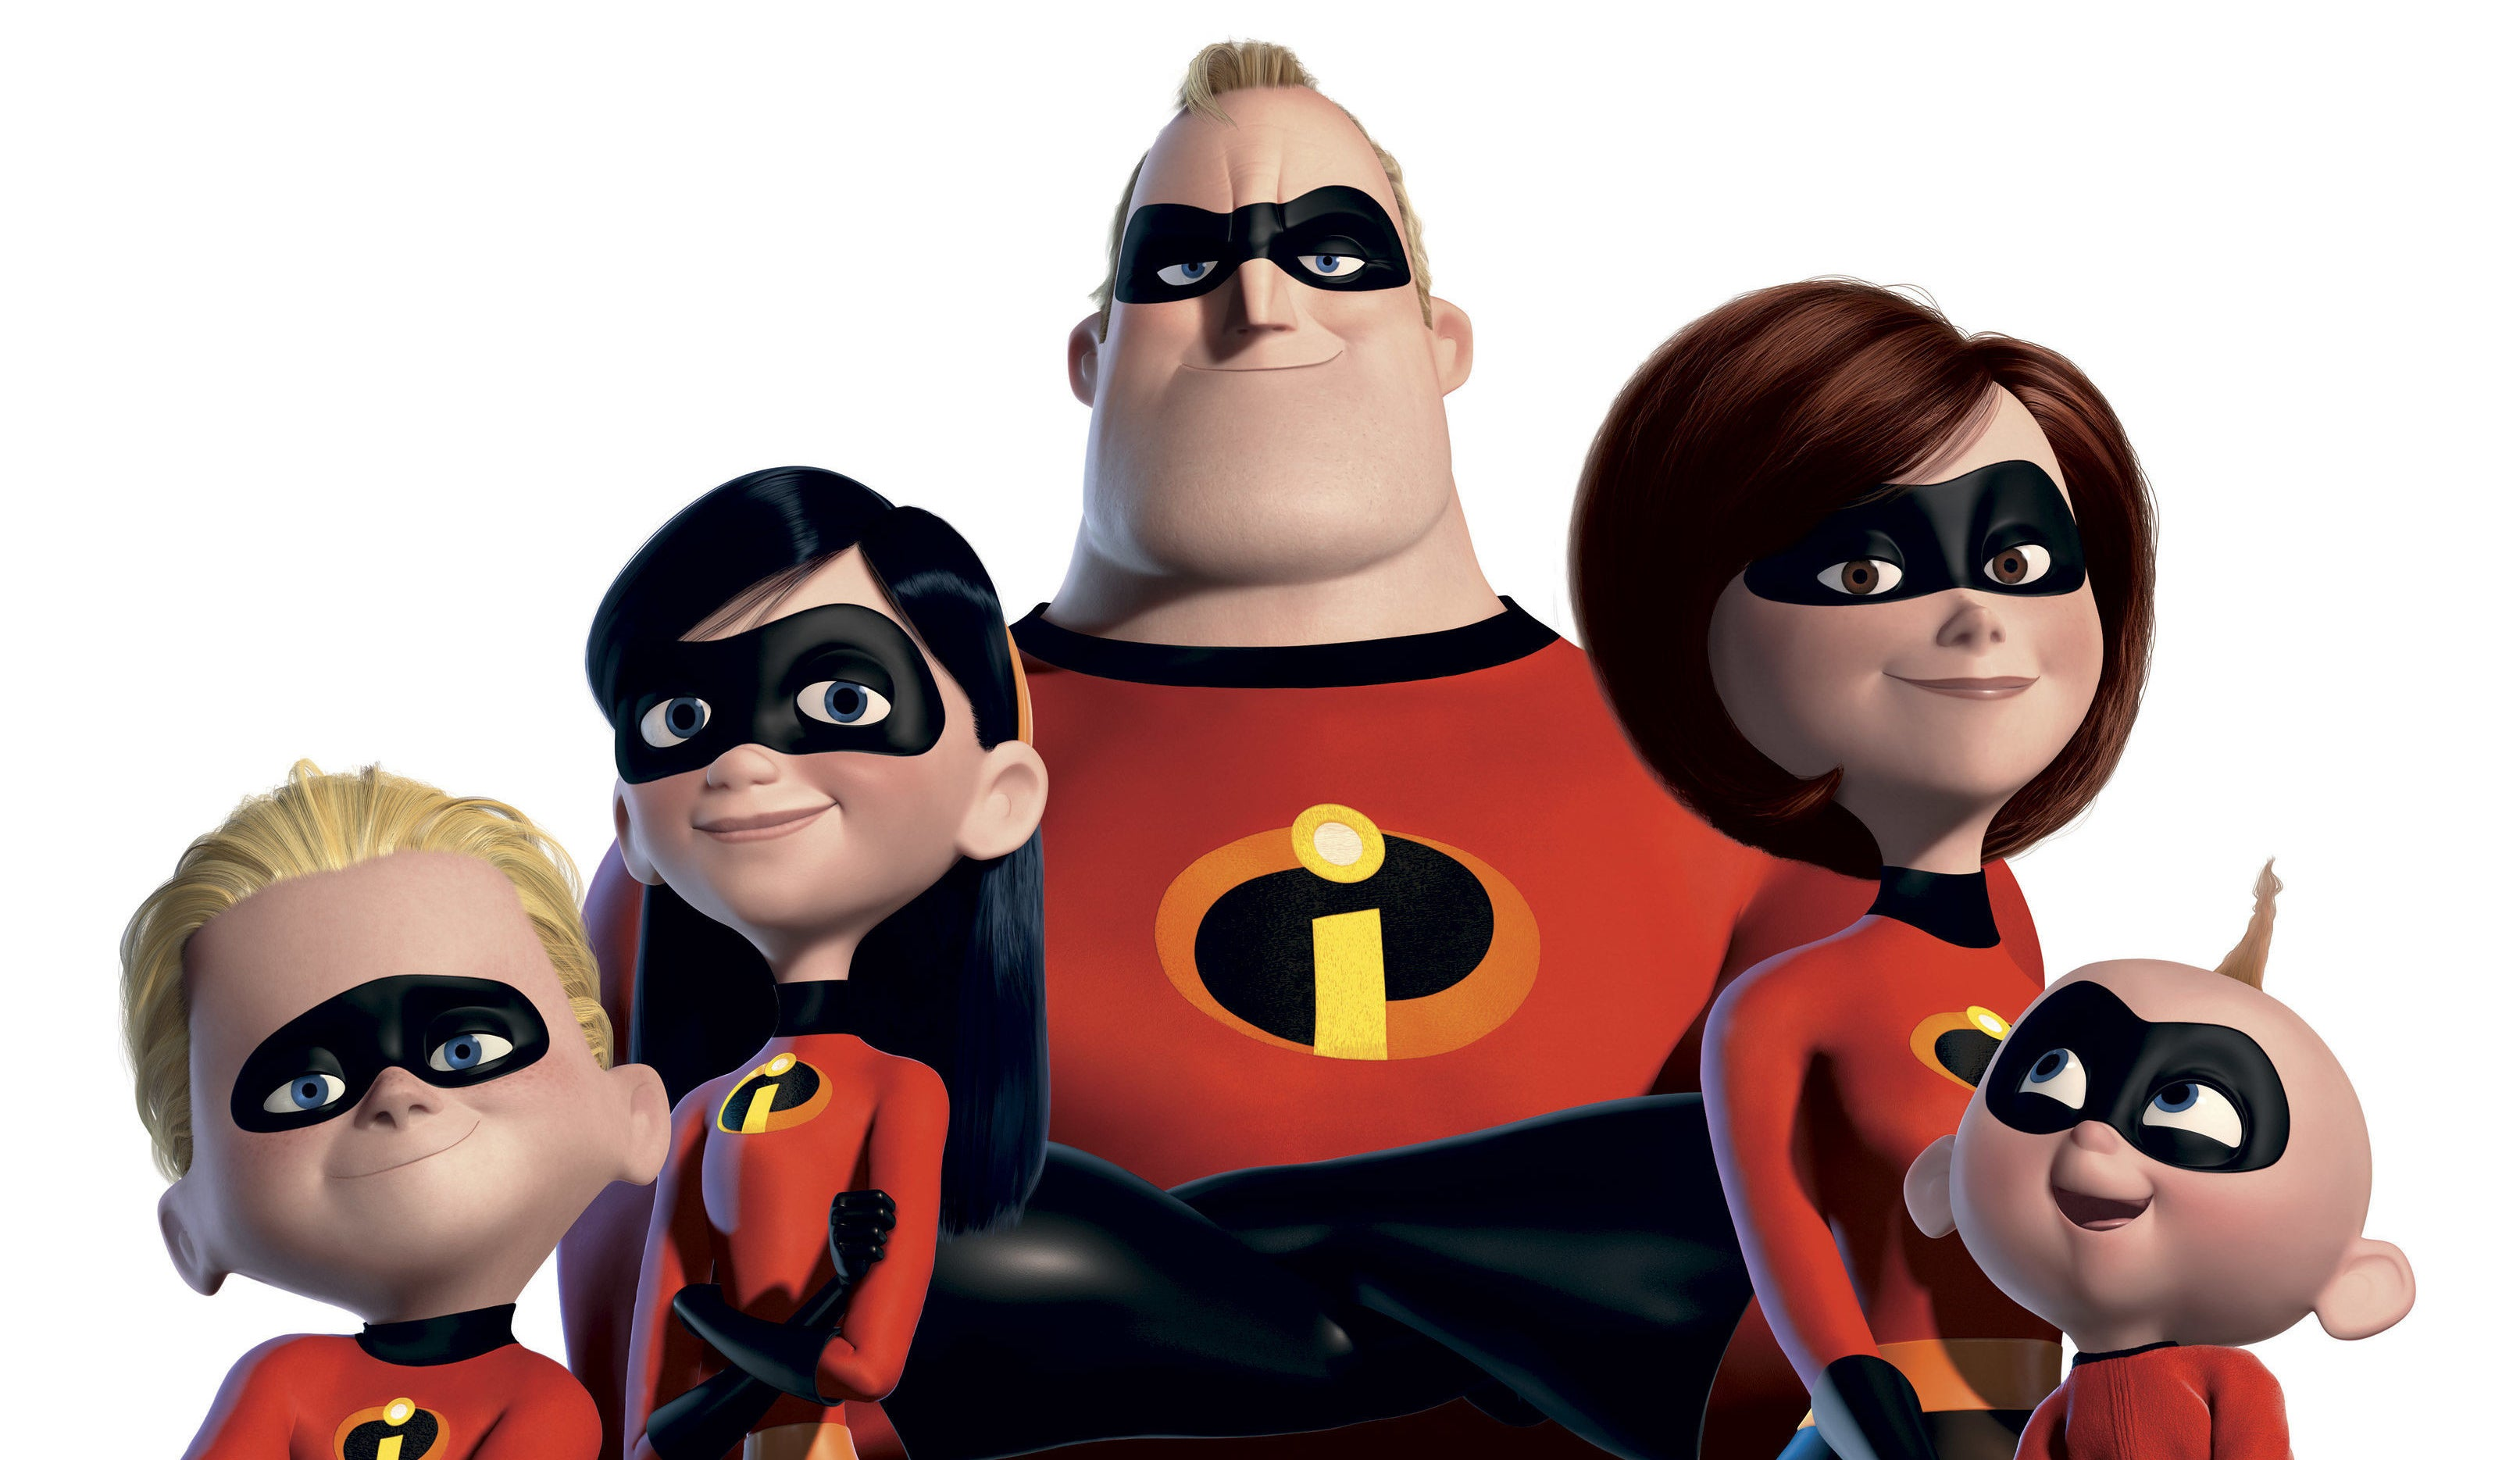 Pixar revela novidades de Toy Story 4 e The Incredibles 2